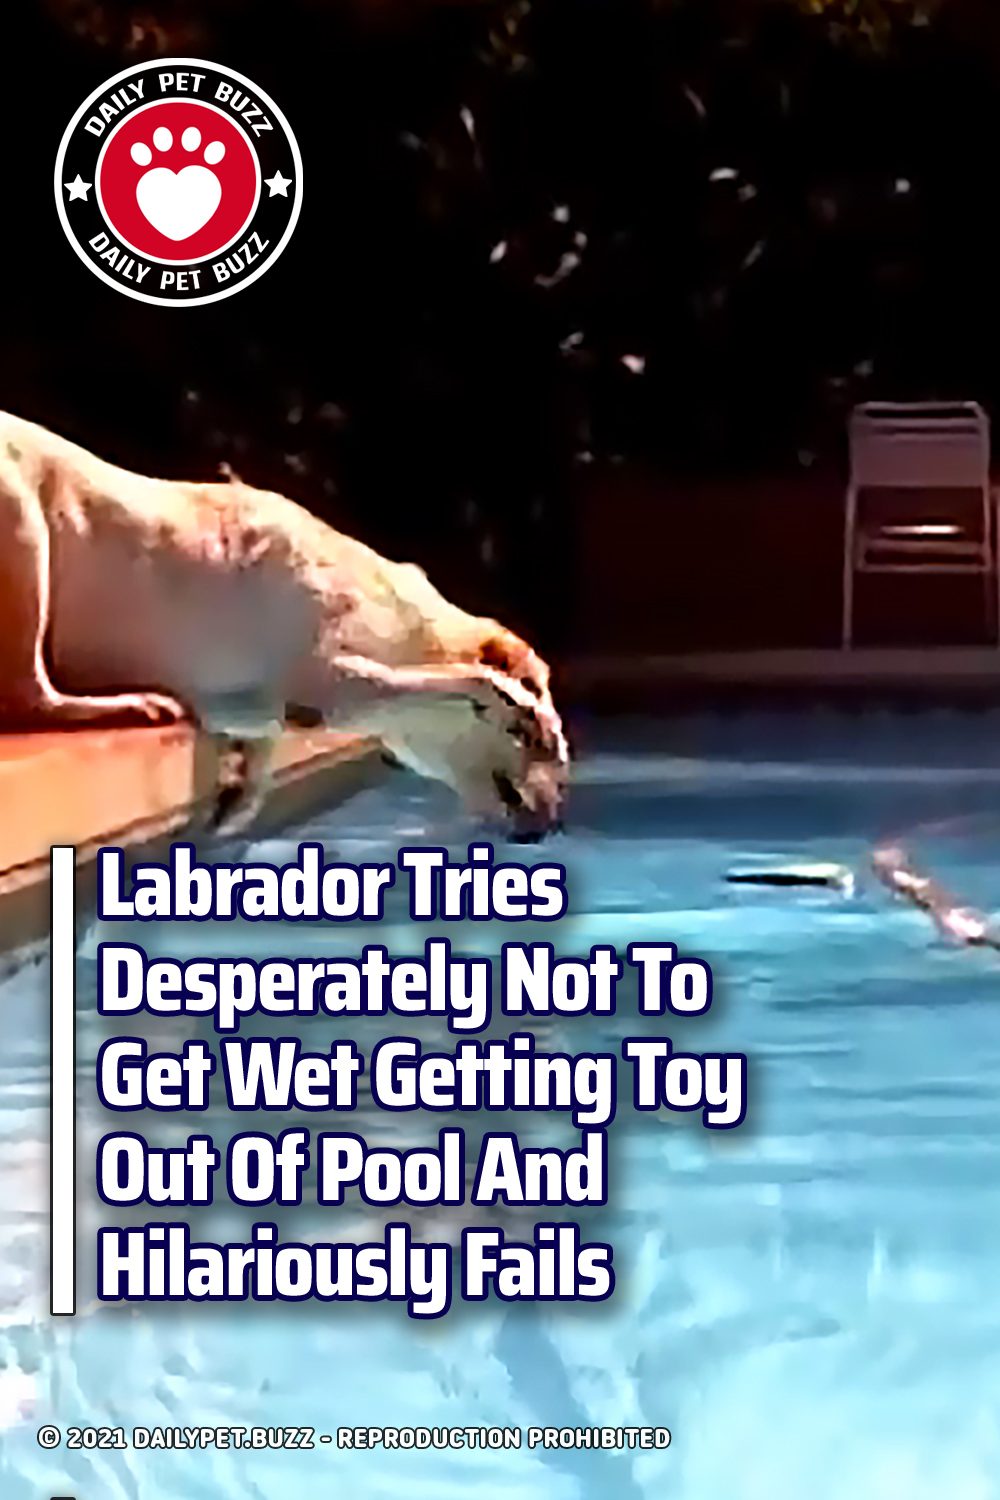 Labrador Tries Desperately Not To Get Wet Getting Toy Out Of Pool And Hilariously Fails